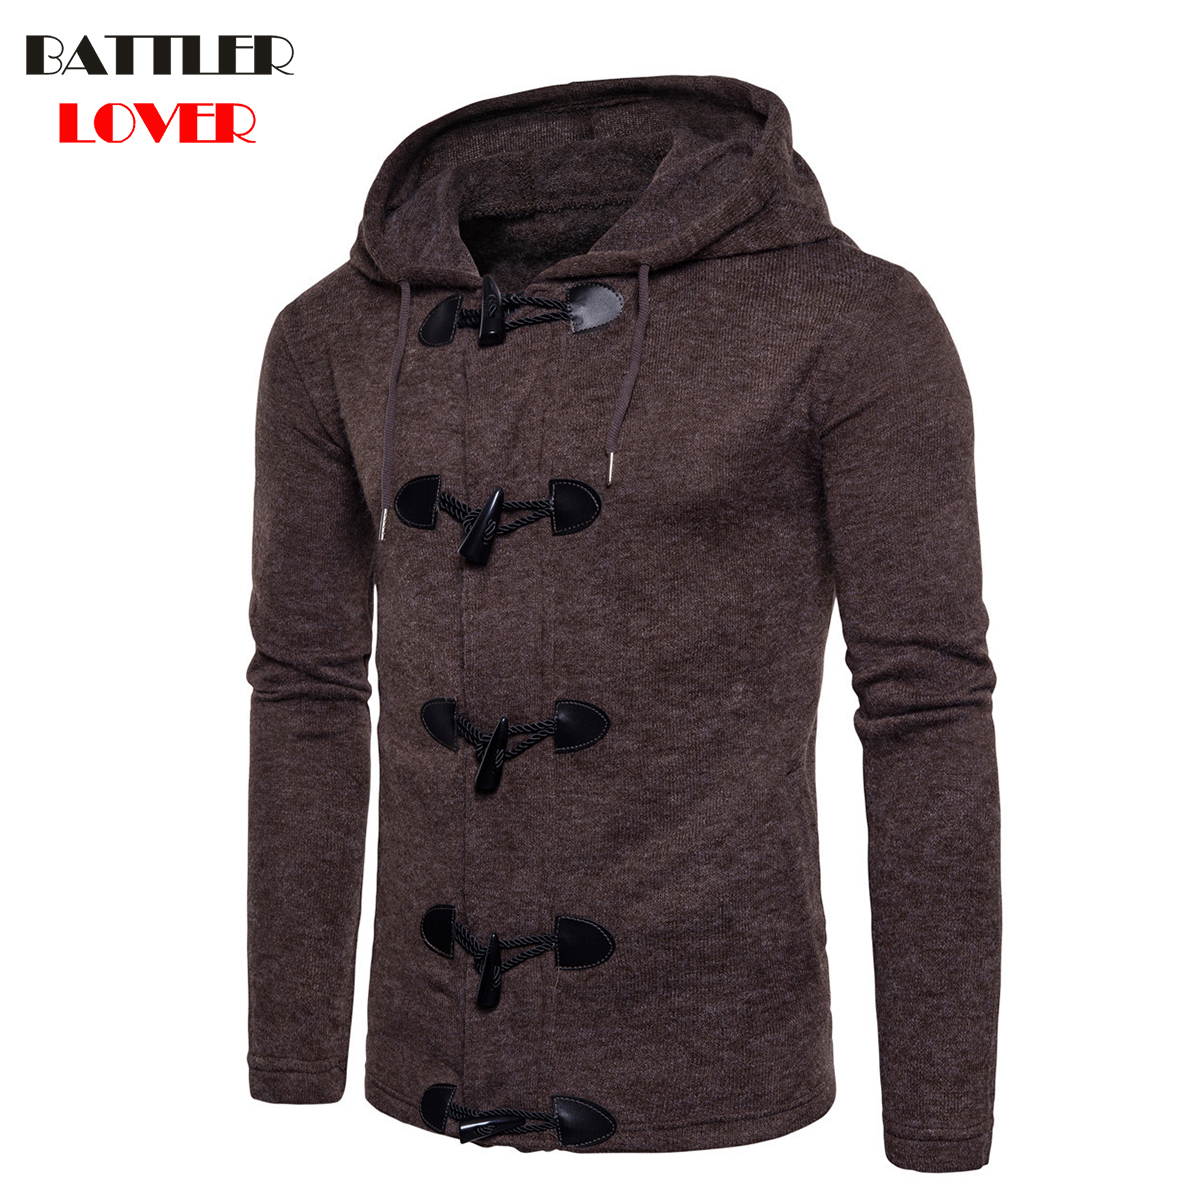 BATTLERLOVER Zipper Hoodies Palace Clothing Jacket Sweatshirts Cardigan Casual Slim New